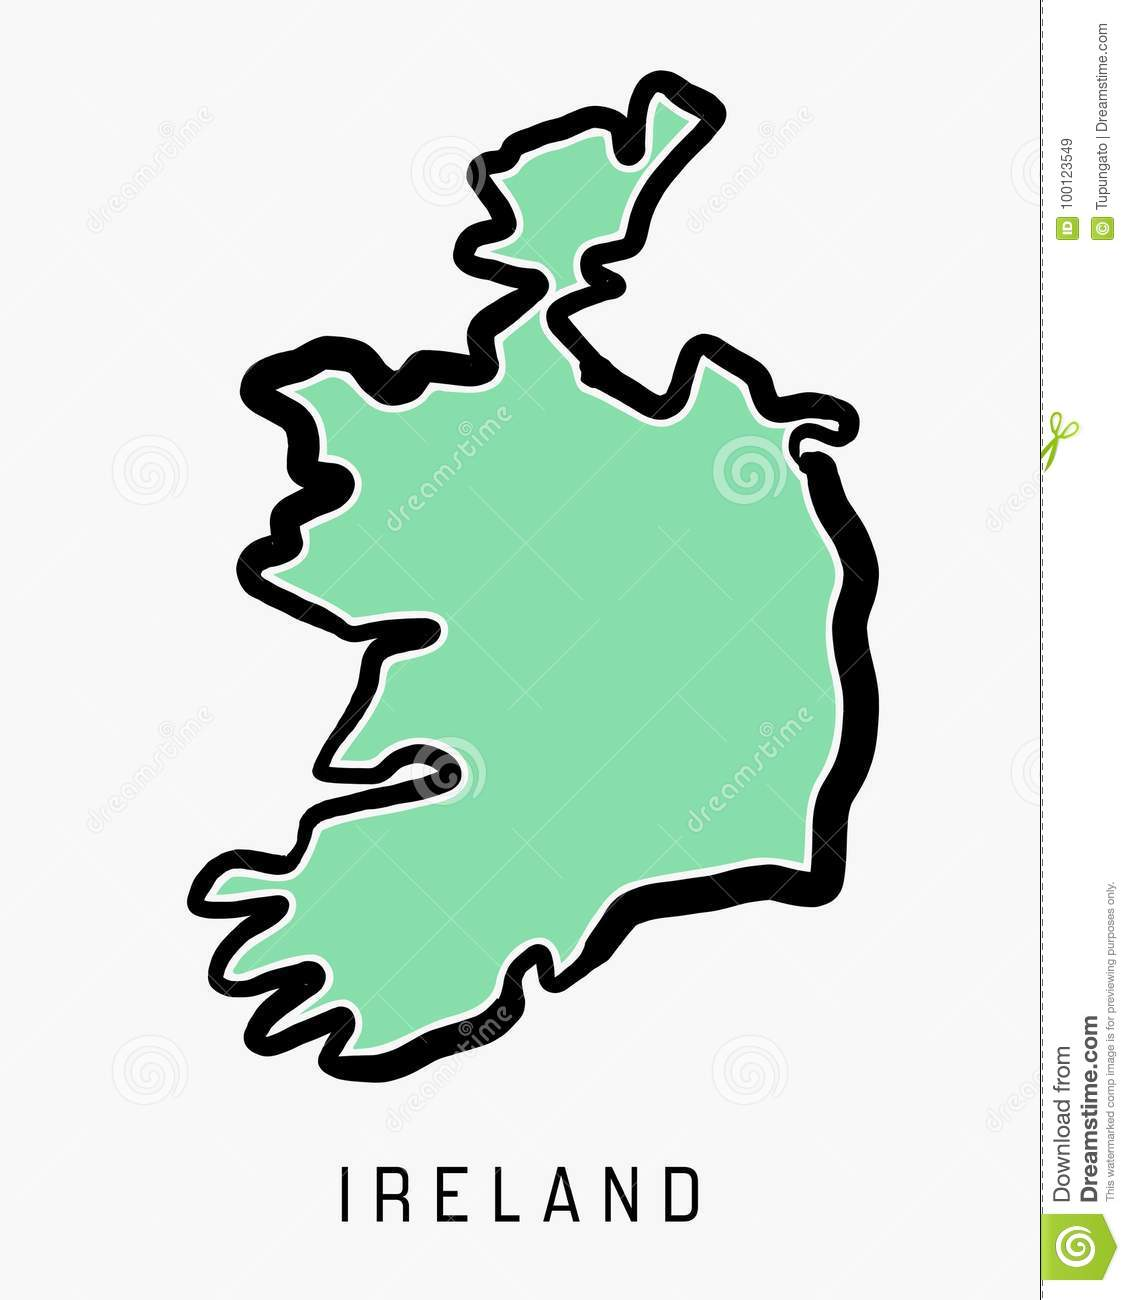 Outline Map Of Ireland.Ireland Simple Map Stock Vector Illustration Of Silhouette 100123549